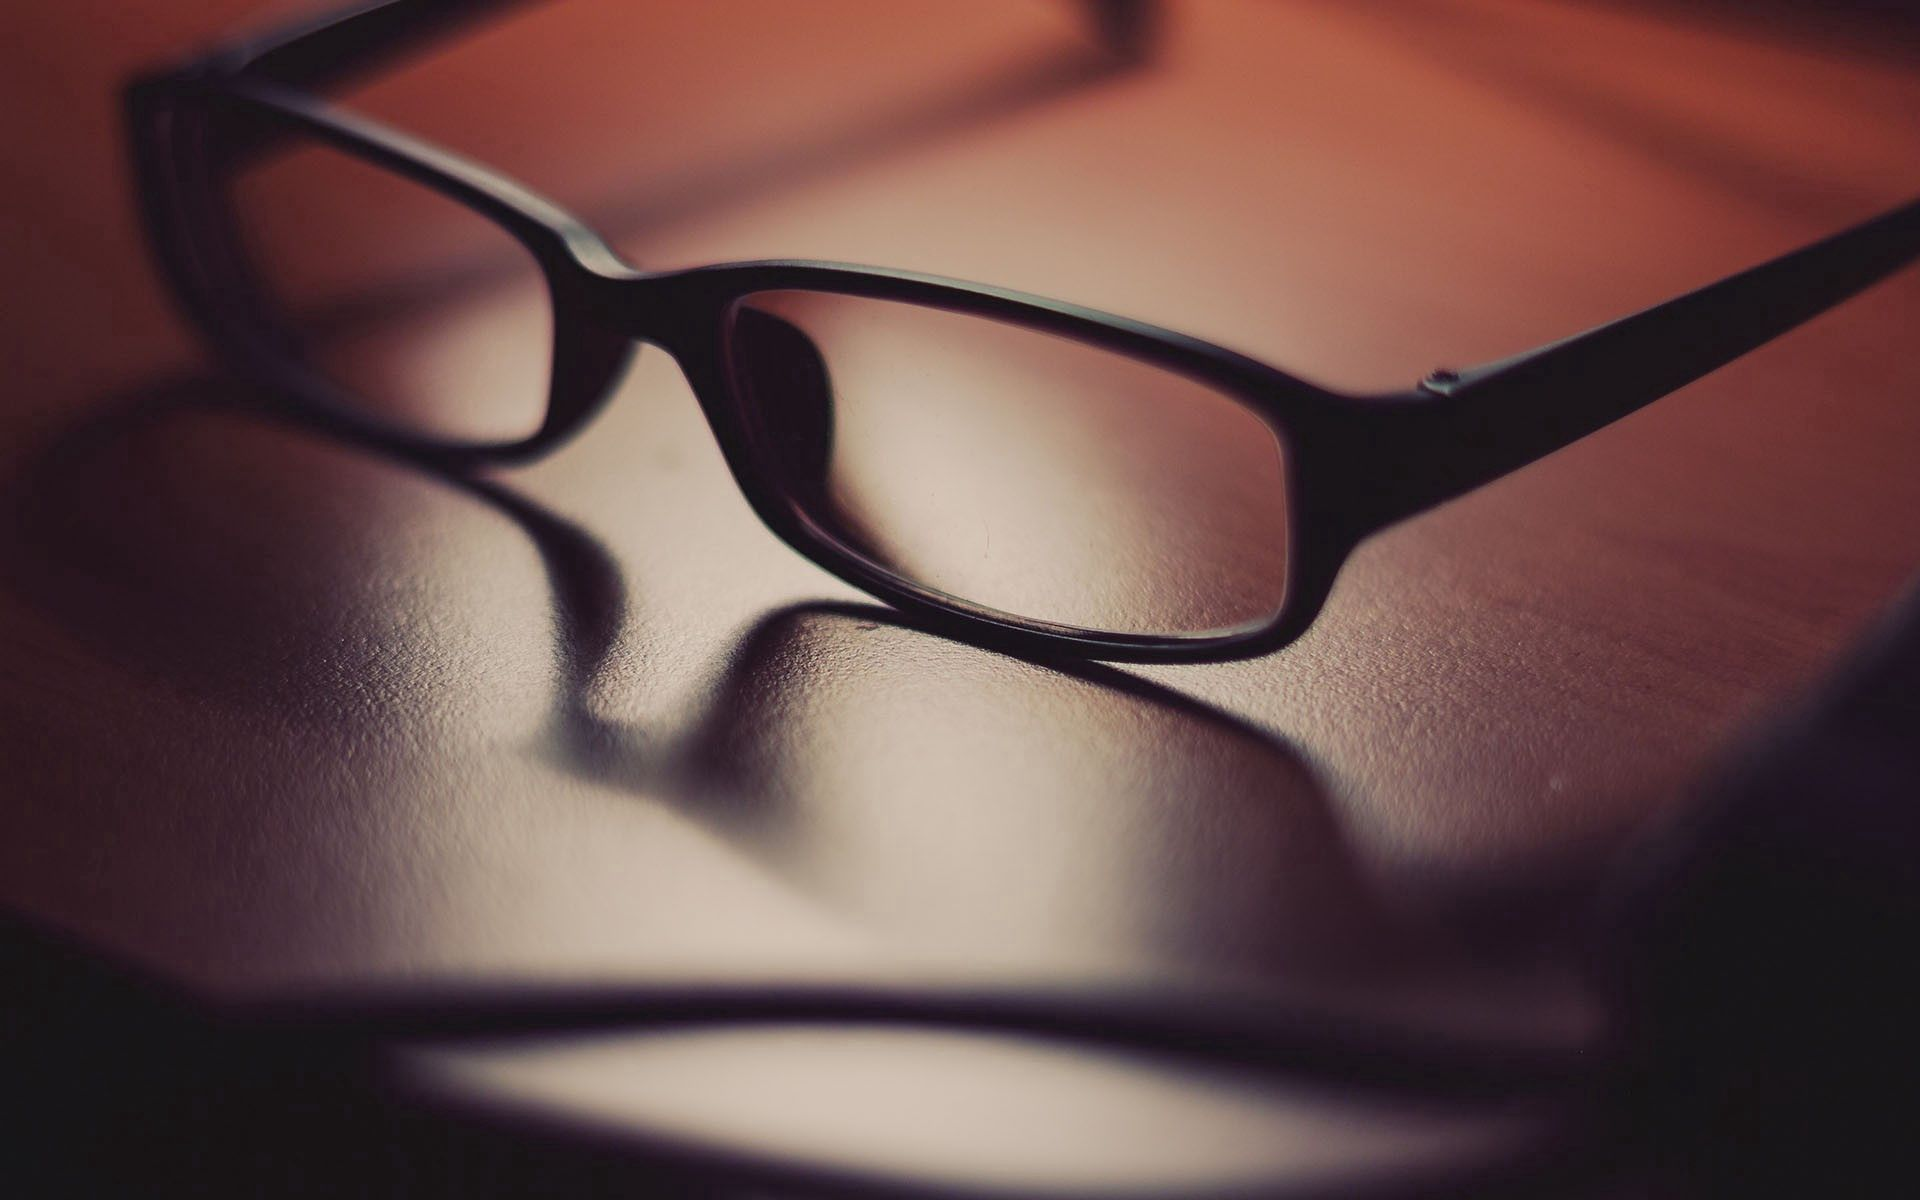 86143 download wallpaper Miscellanea, Miscellaneous, Surface, Shadow, Glass, Lenses, Glasses, Spectacles, Frame, Setting screensavers and pictures for free